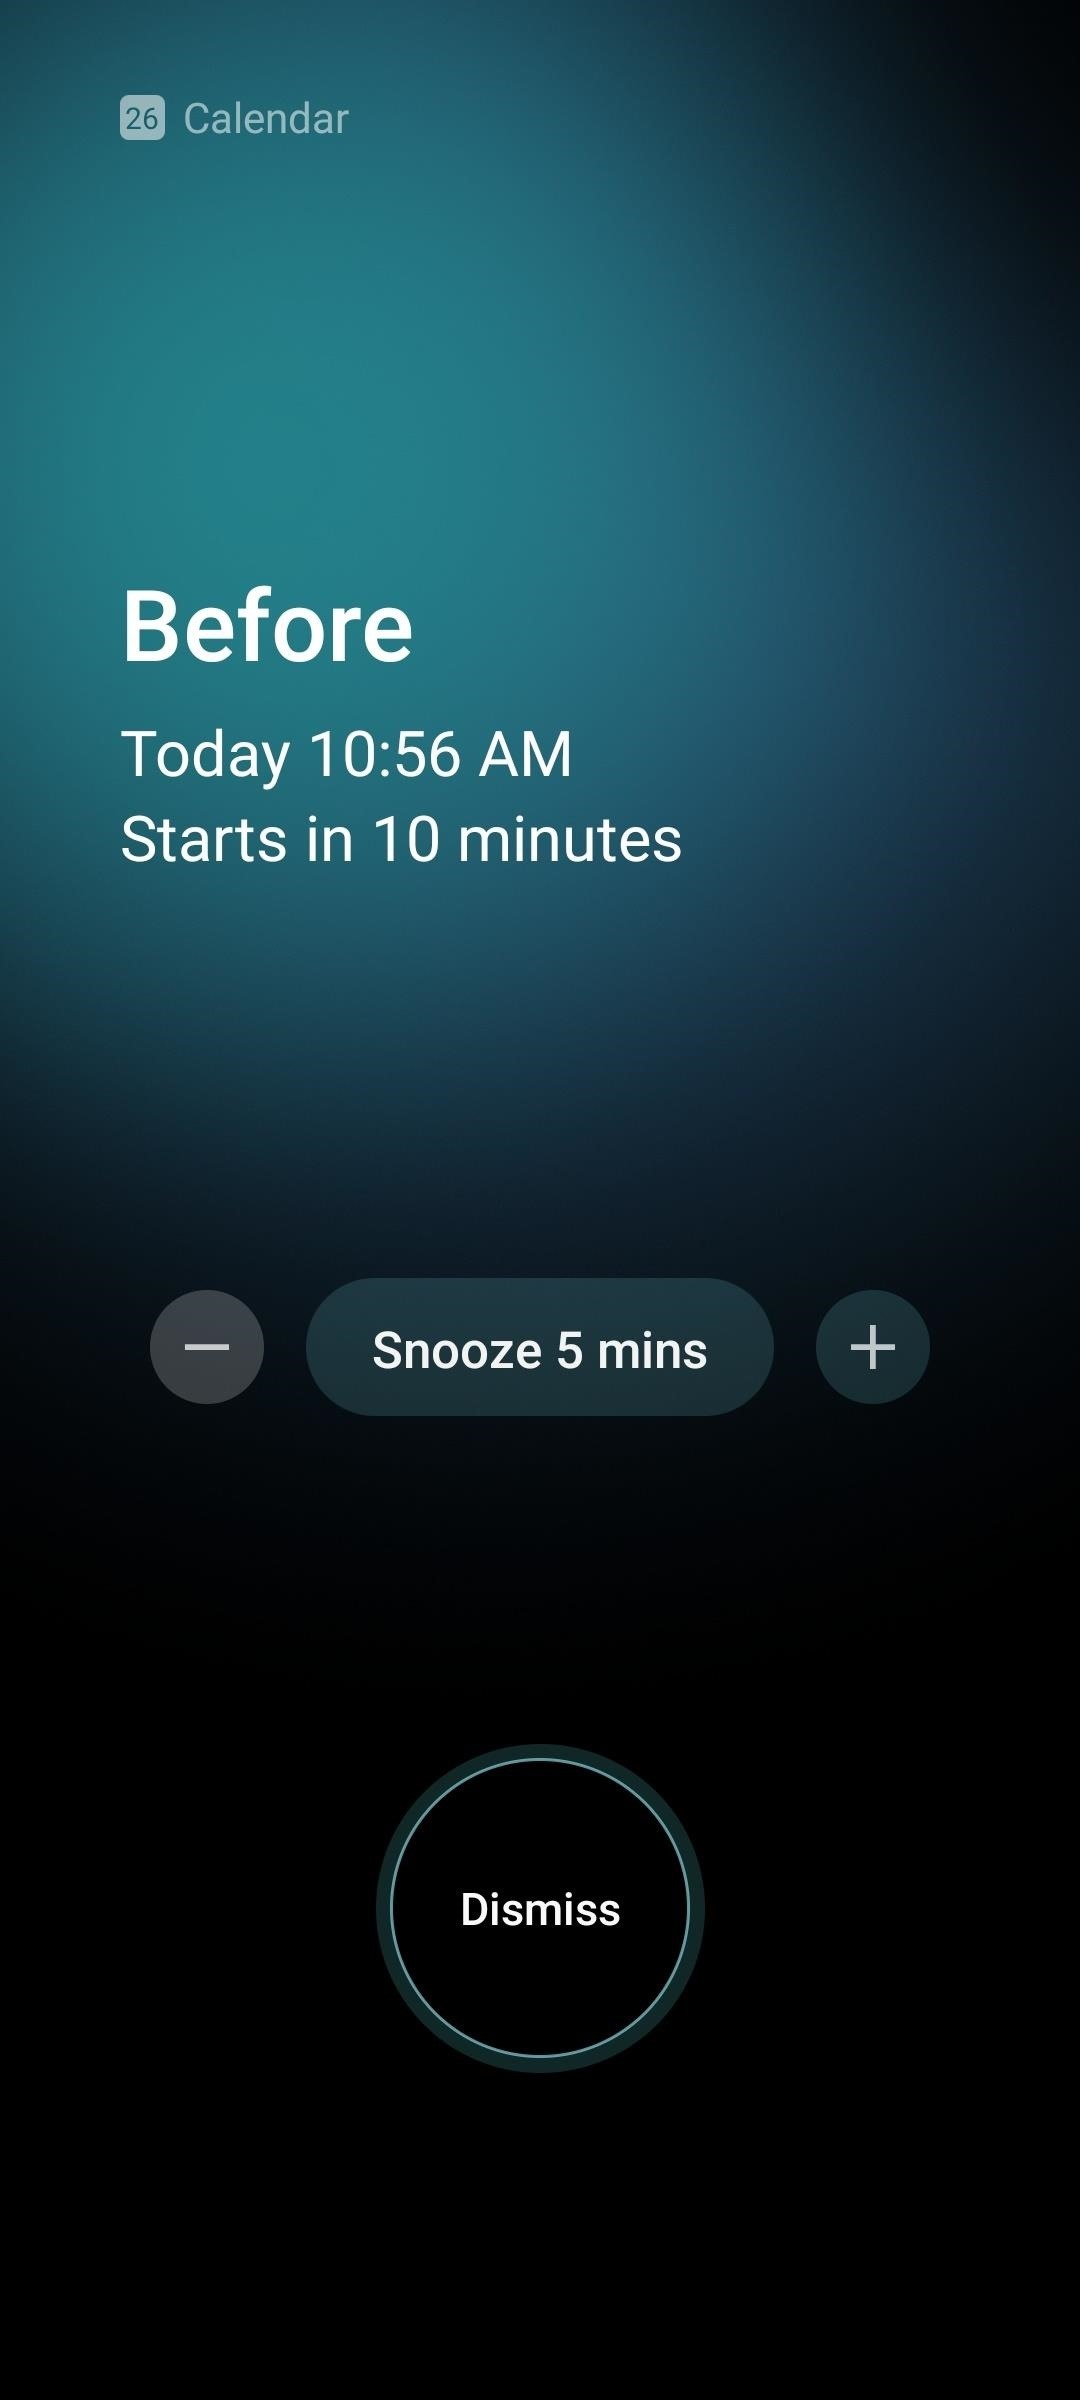 How to Disable the Full-Screen Calendar Alerts on Your Samsung Galaxy Phone